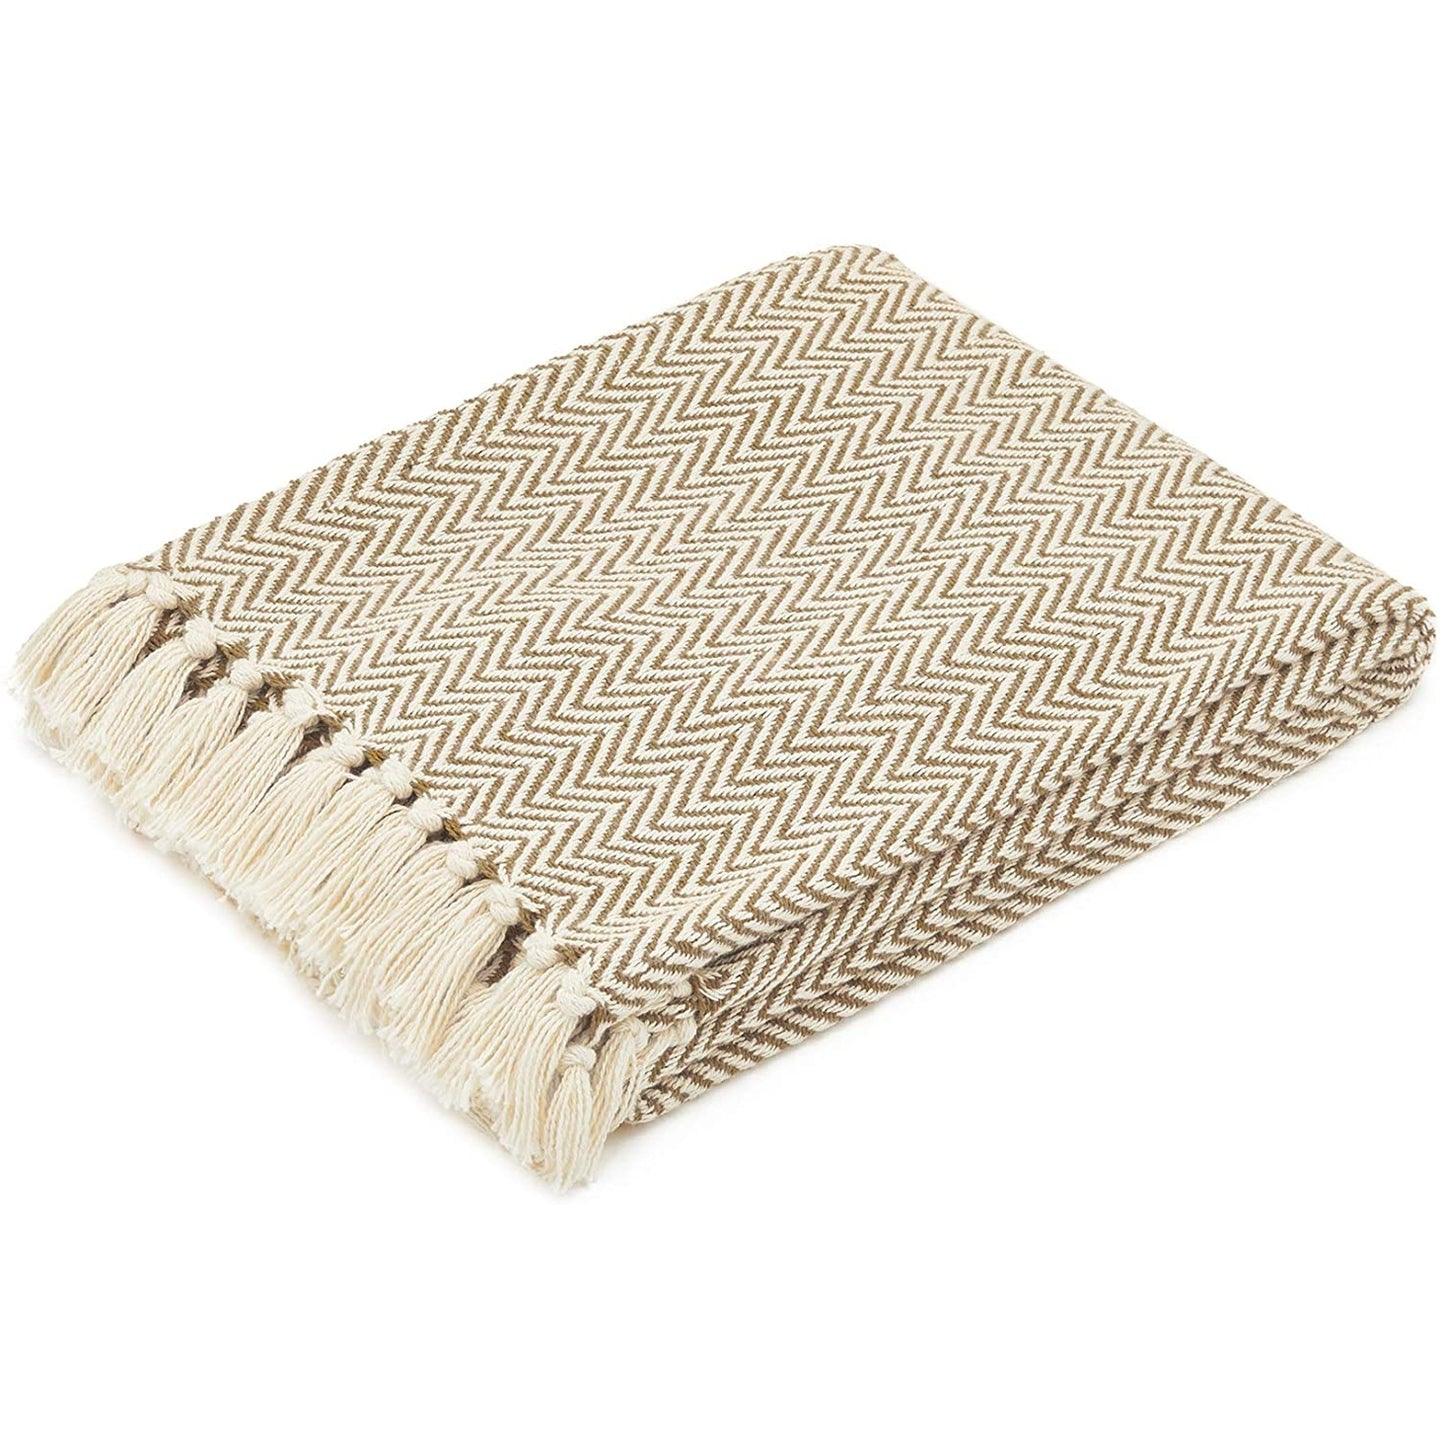 COTTON THROW BLANKET - CAMEL AND BEIGE